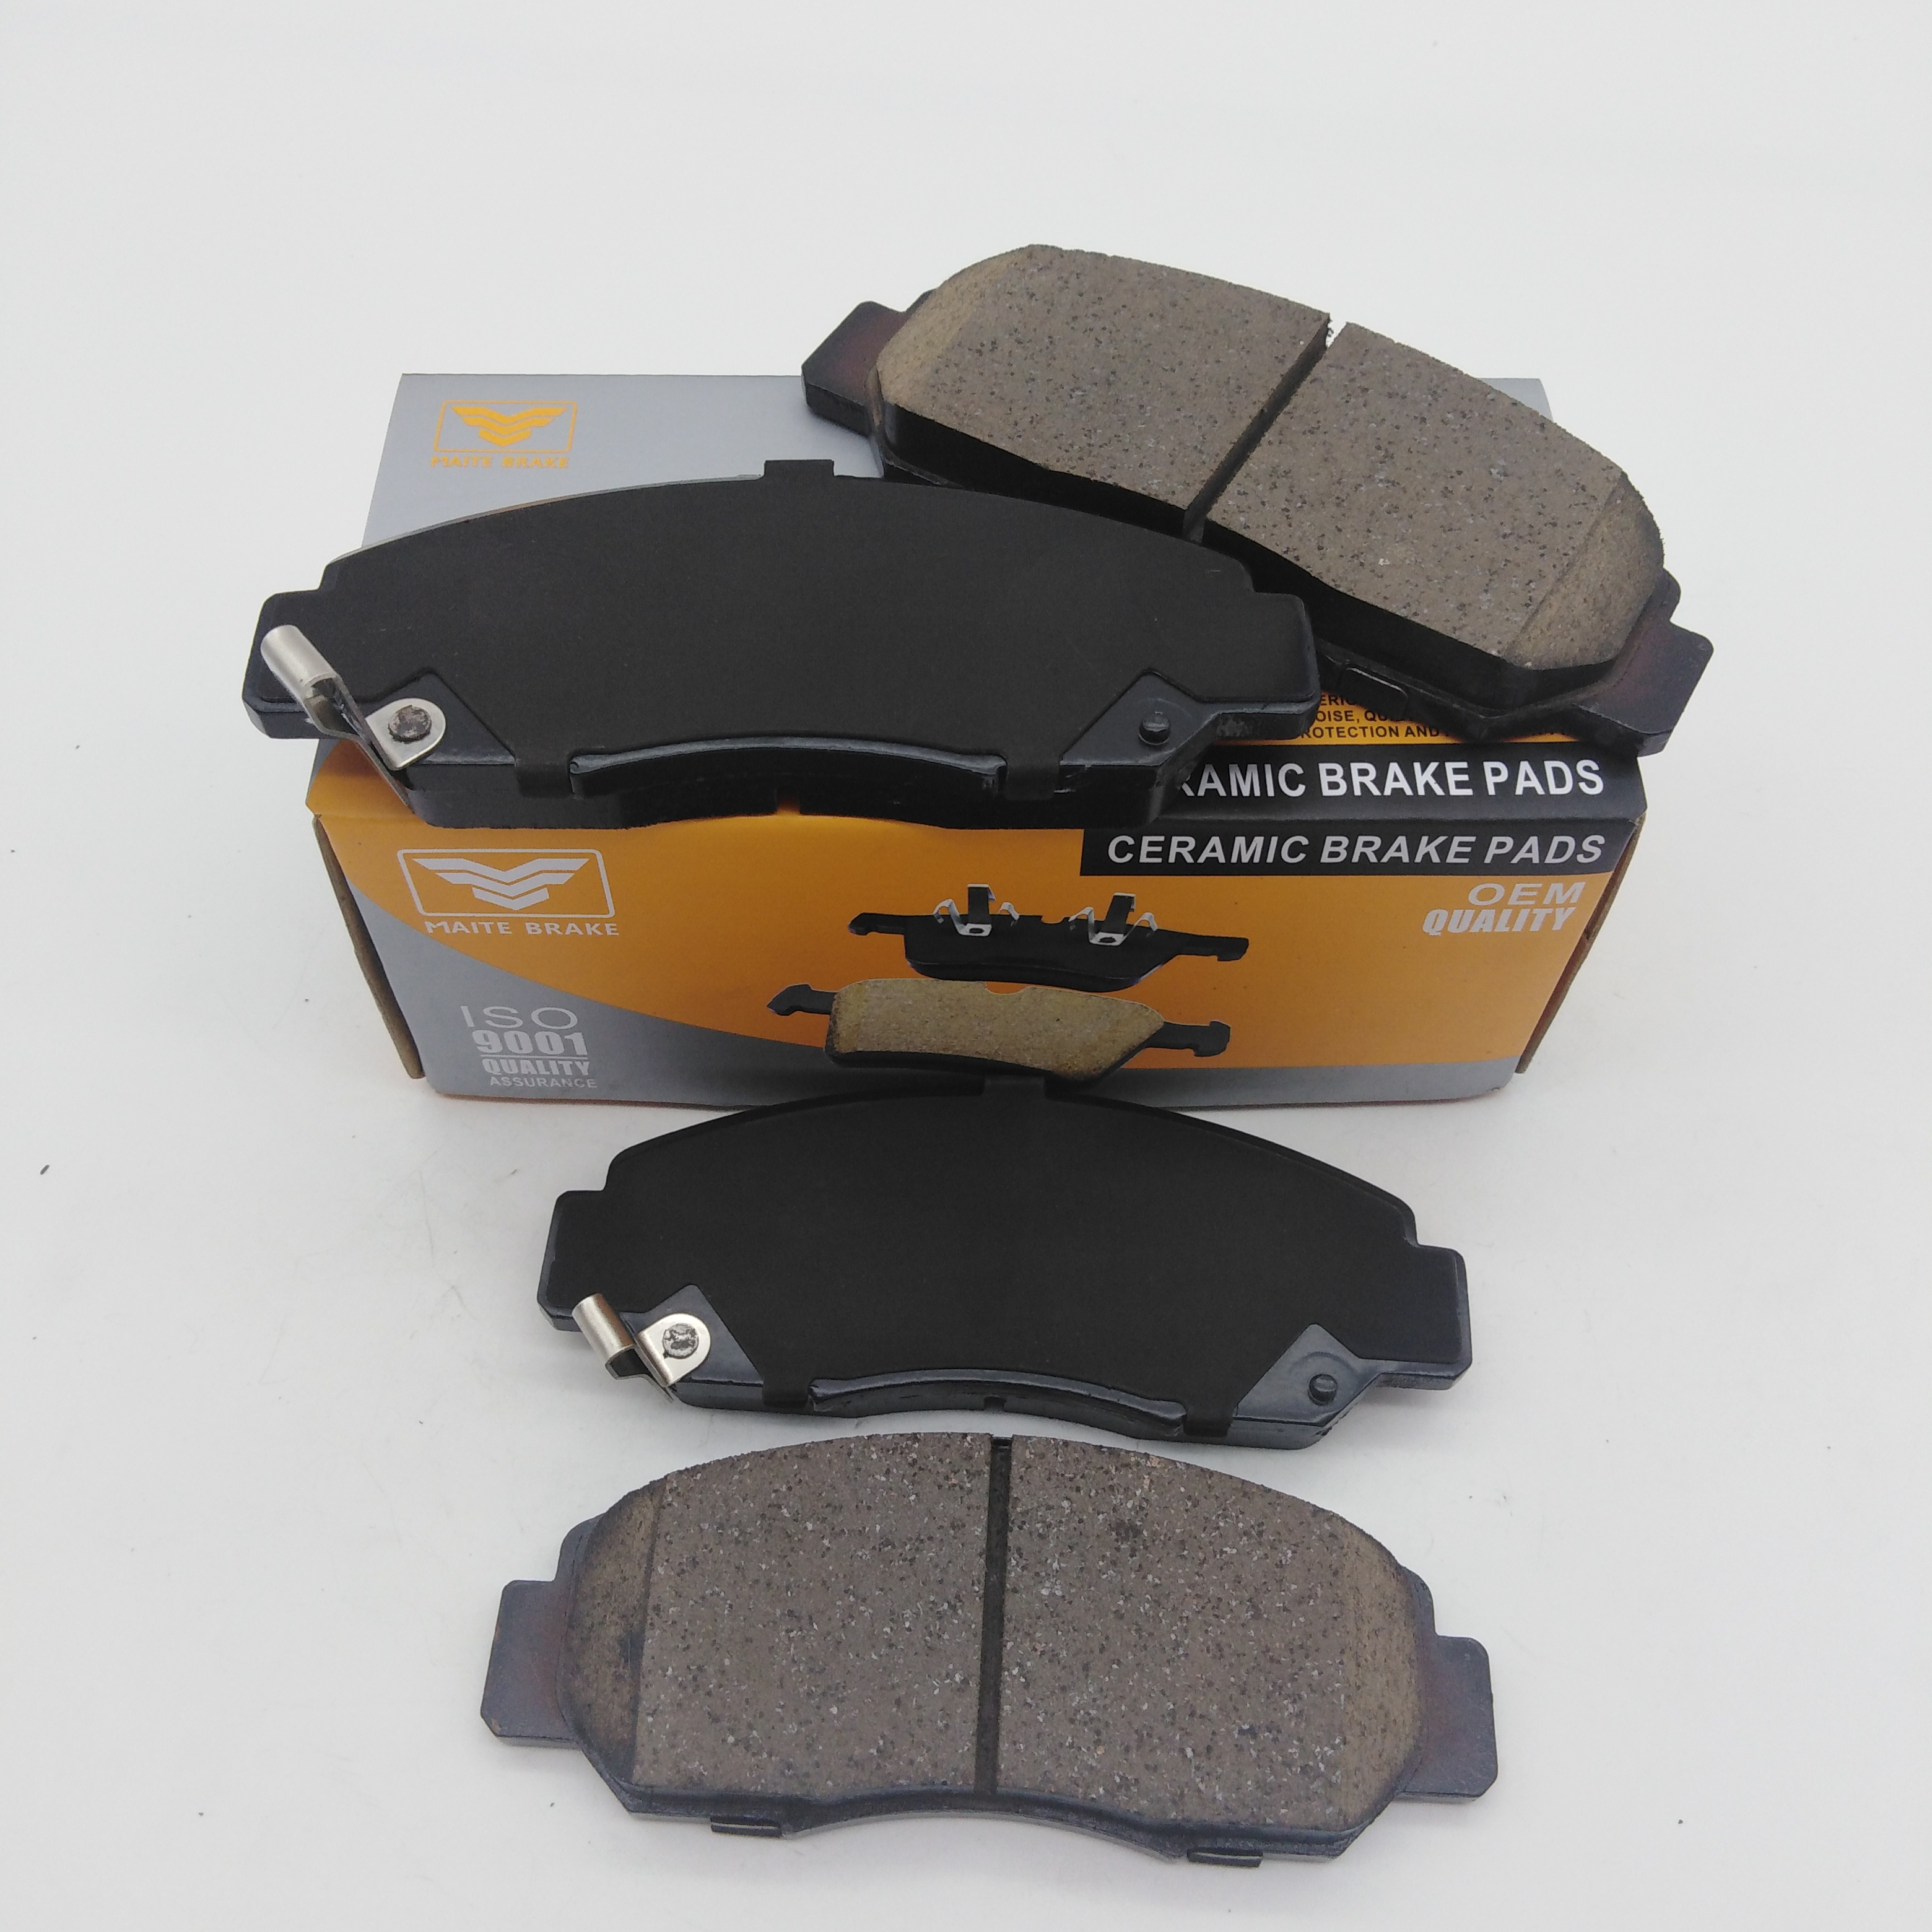 Car accessories for Honda Odyssey Stream Inspire Civic Accord auto brake parts fit front brake pad set D787 D959 D1608 D1276 <strong>D15</strong>